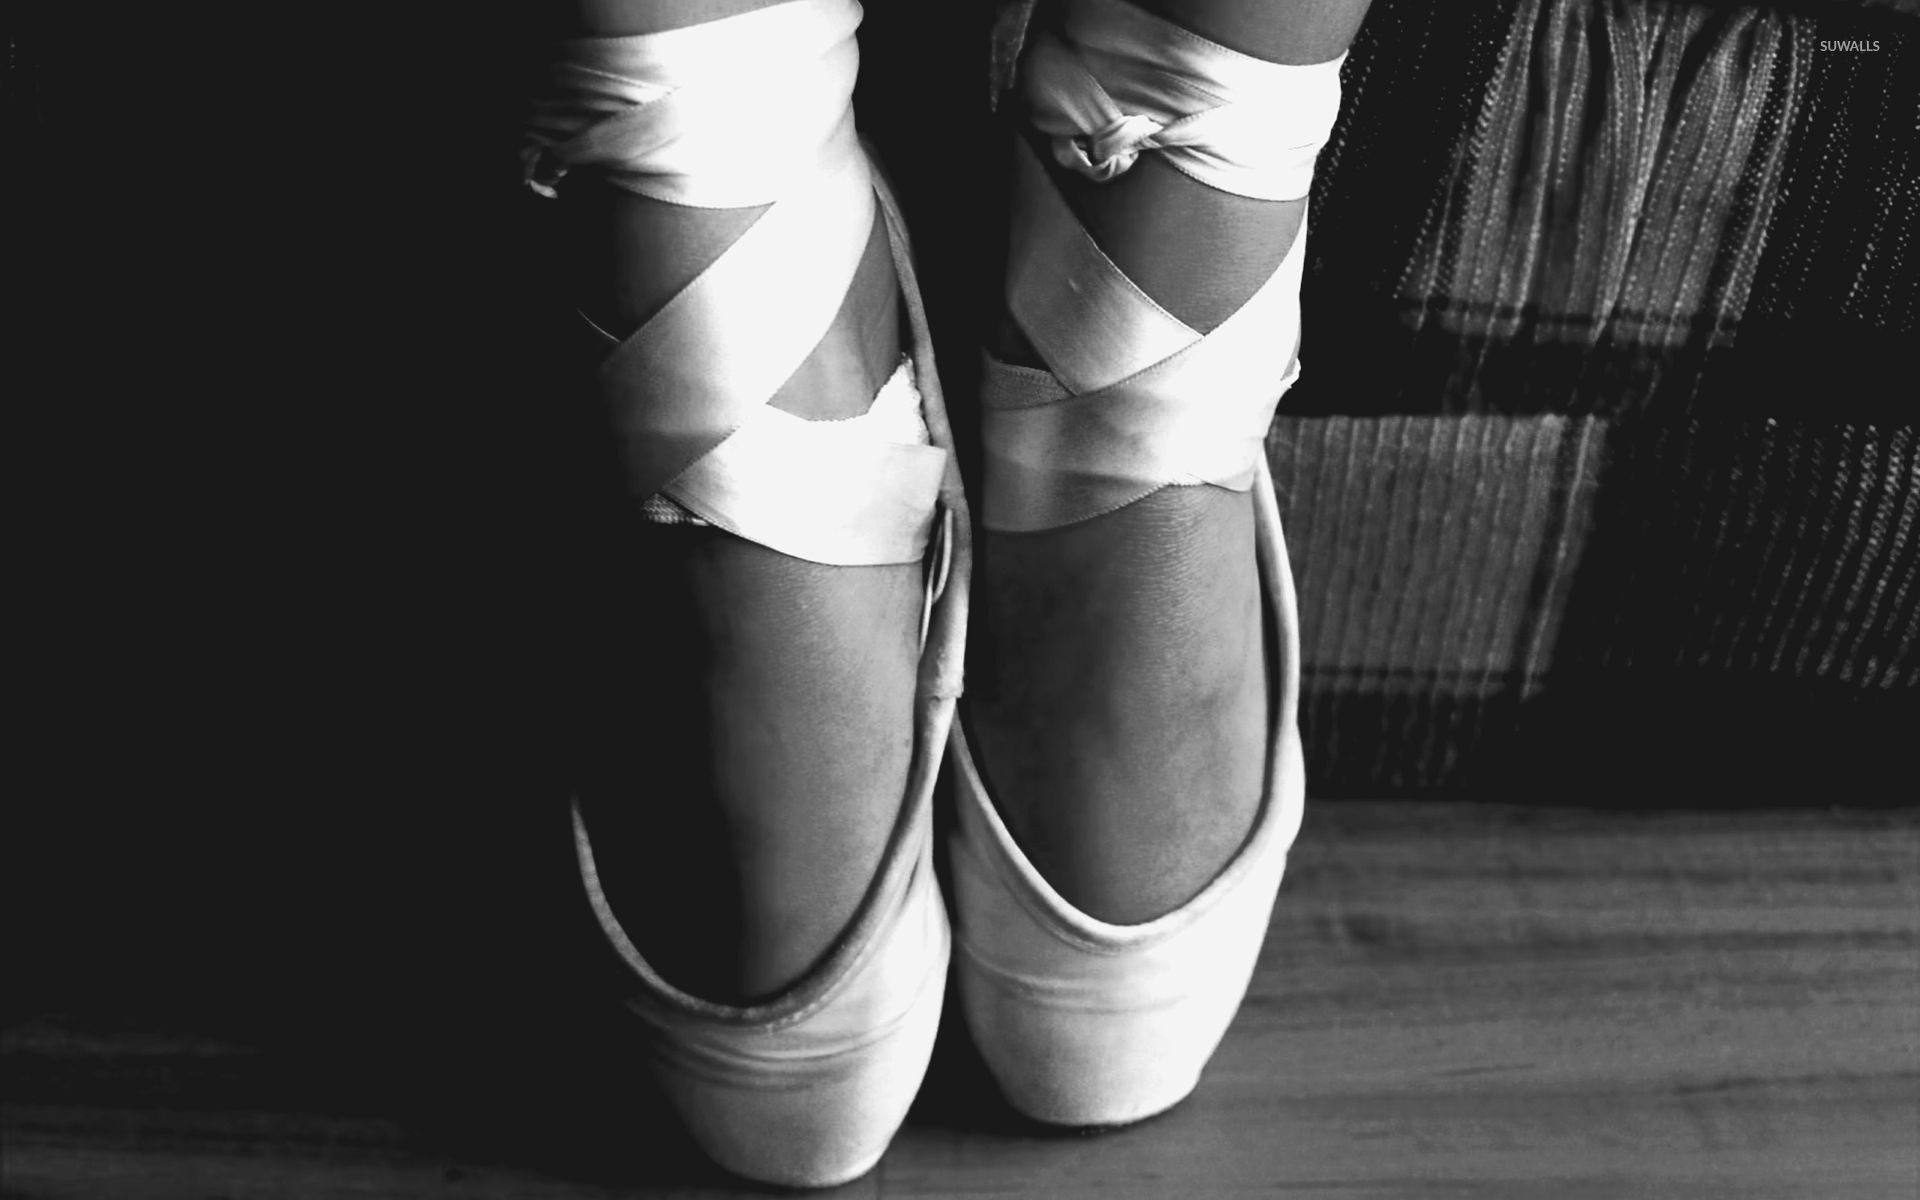 1920x1200 Ballet shoes [2] wallpaper